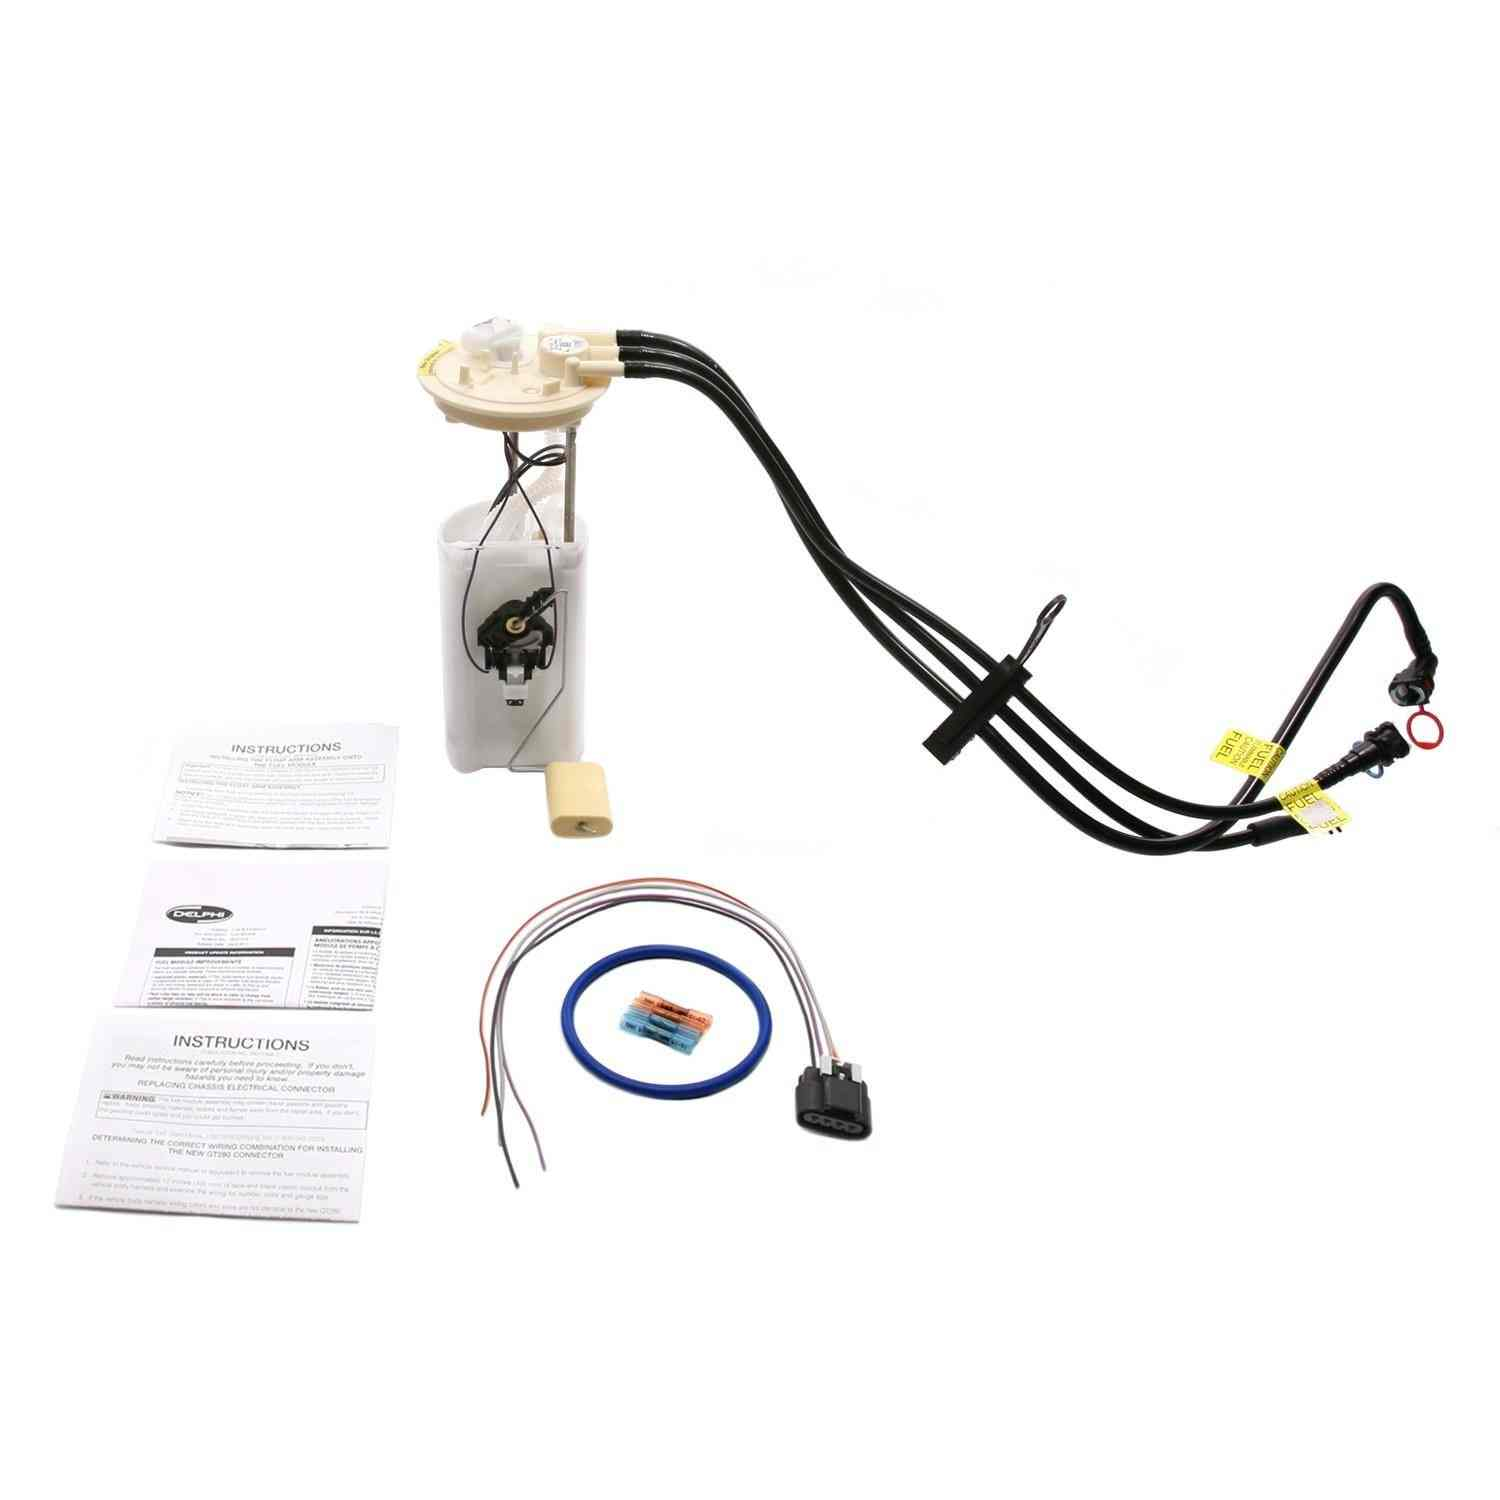 MAGNETI MARELLI OFFERED BY MOPAR - Fuel Pump Module Assembly - MGM 1AMFP00115